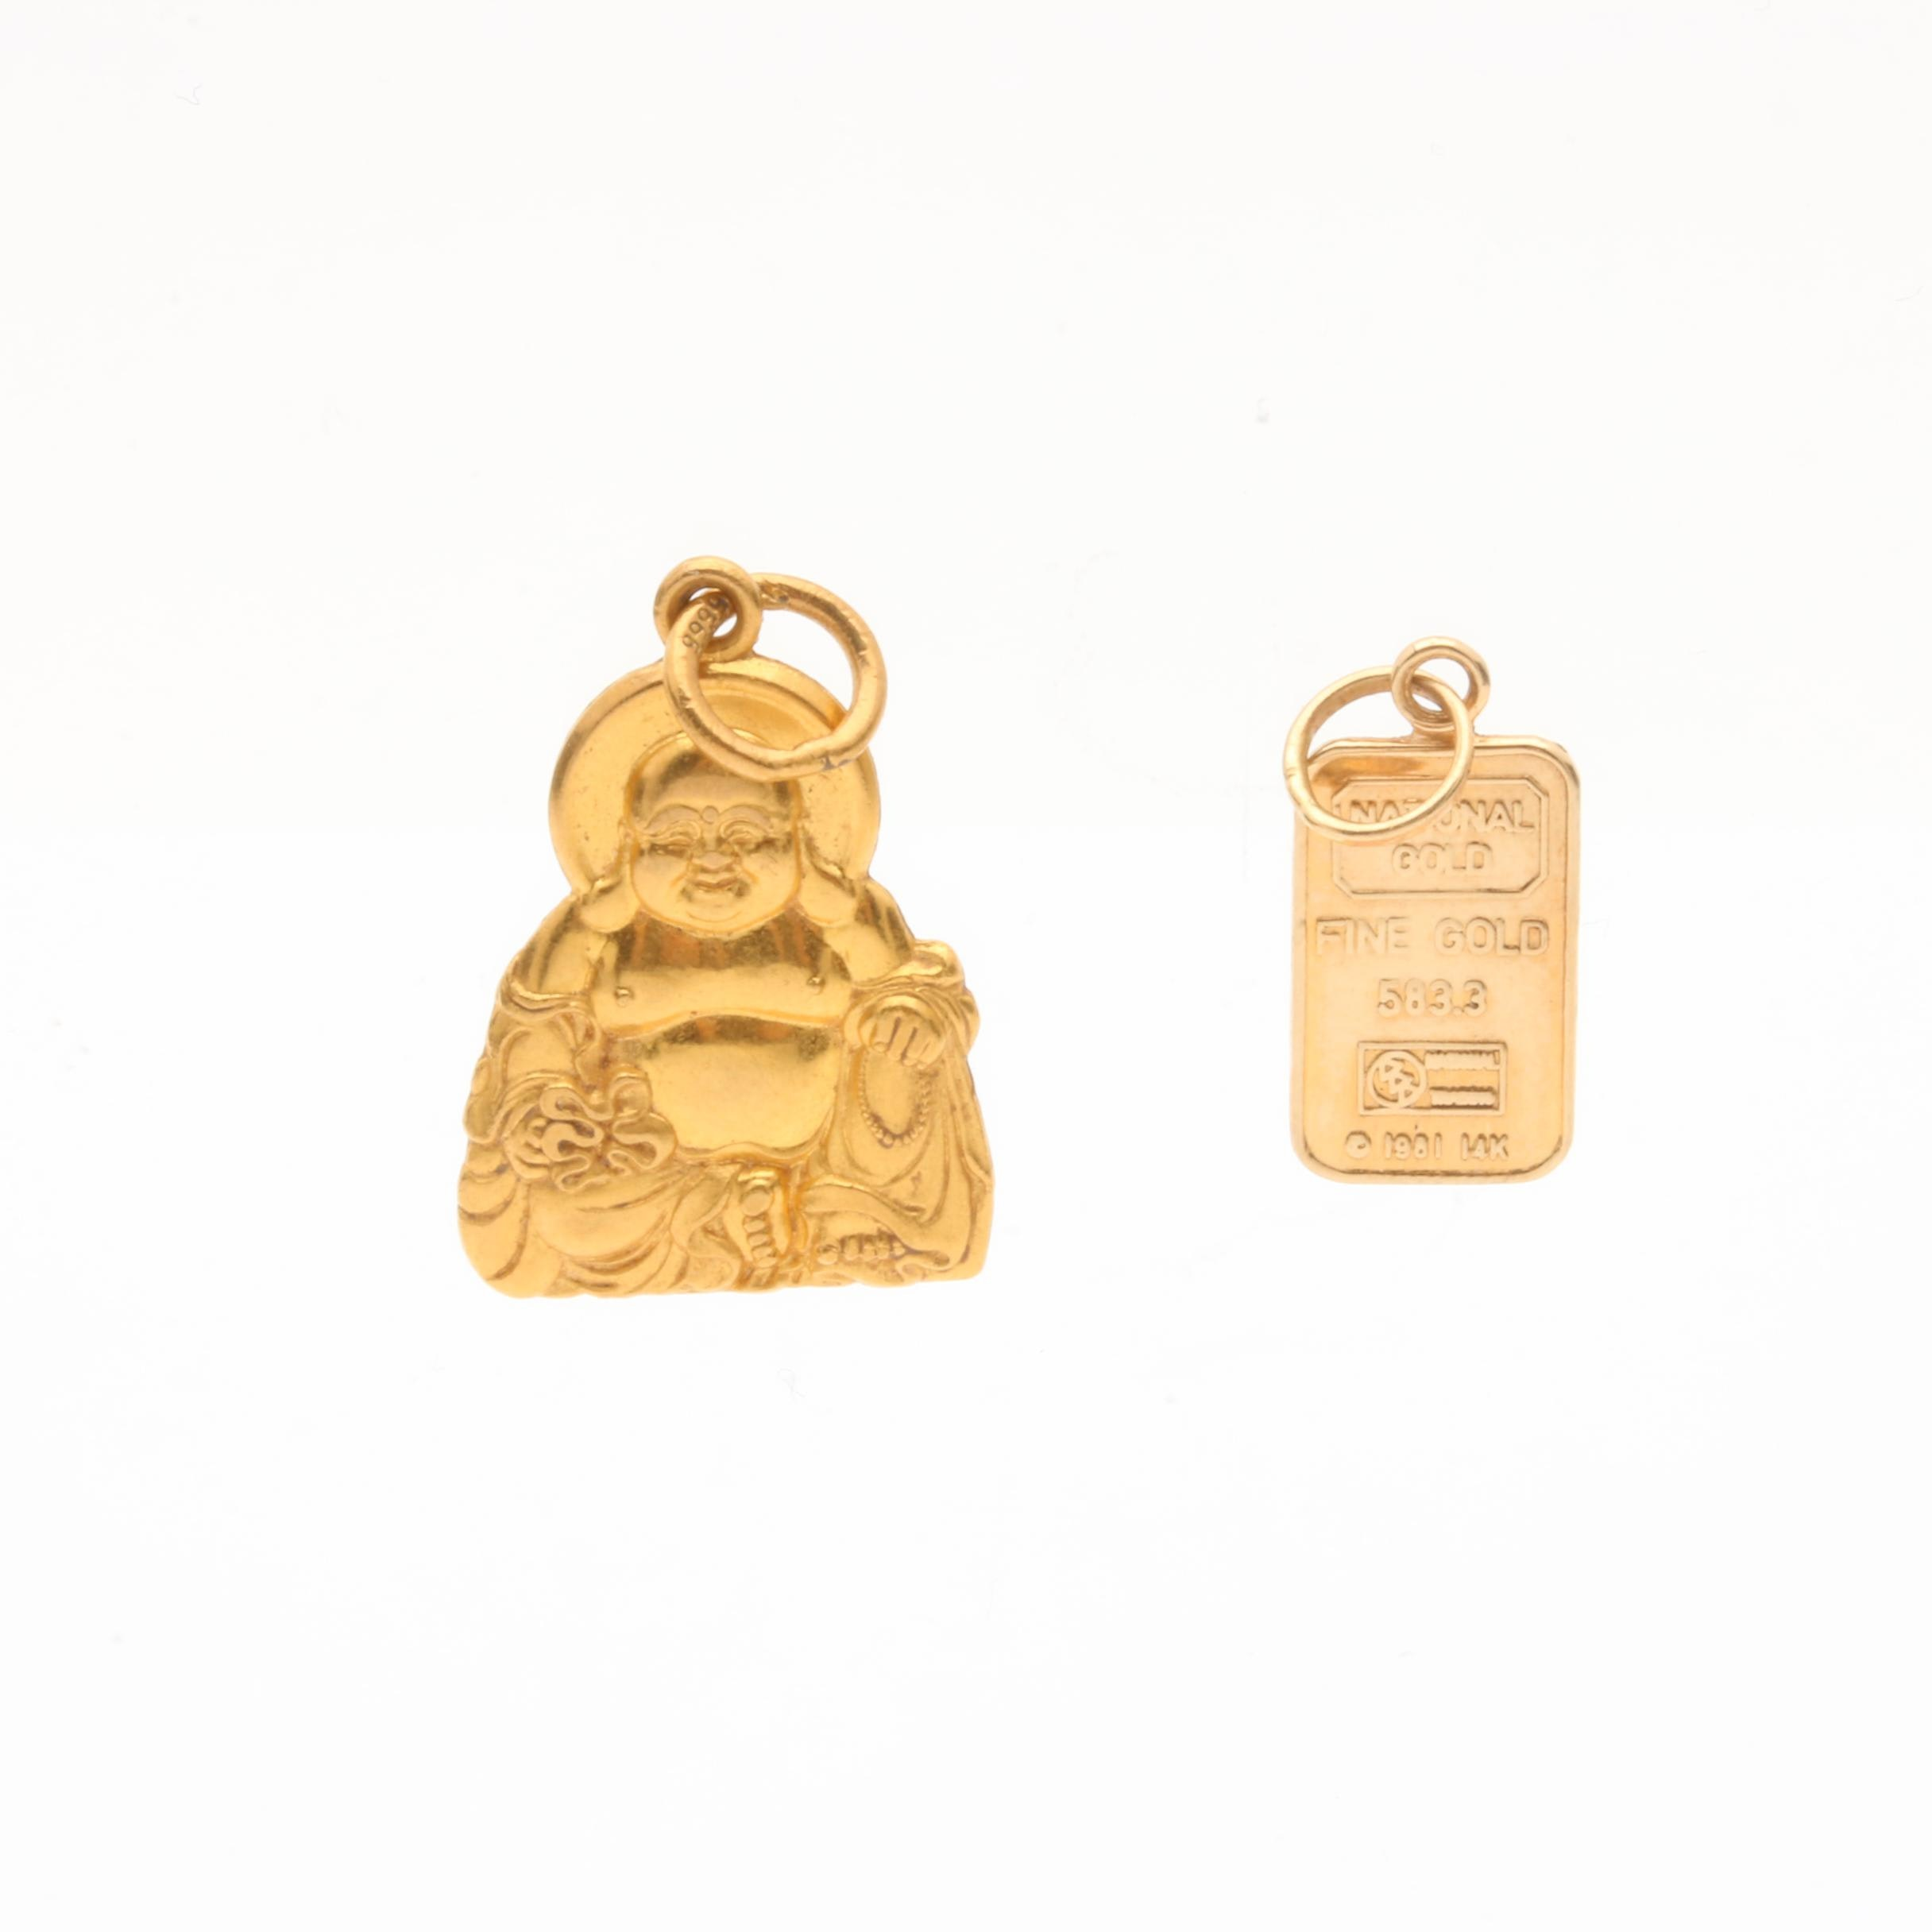 14K and 24K Yellow Gold Buddha and National Gold Charms